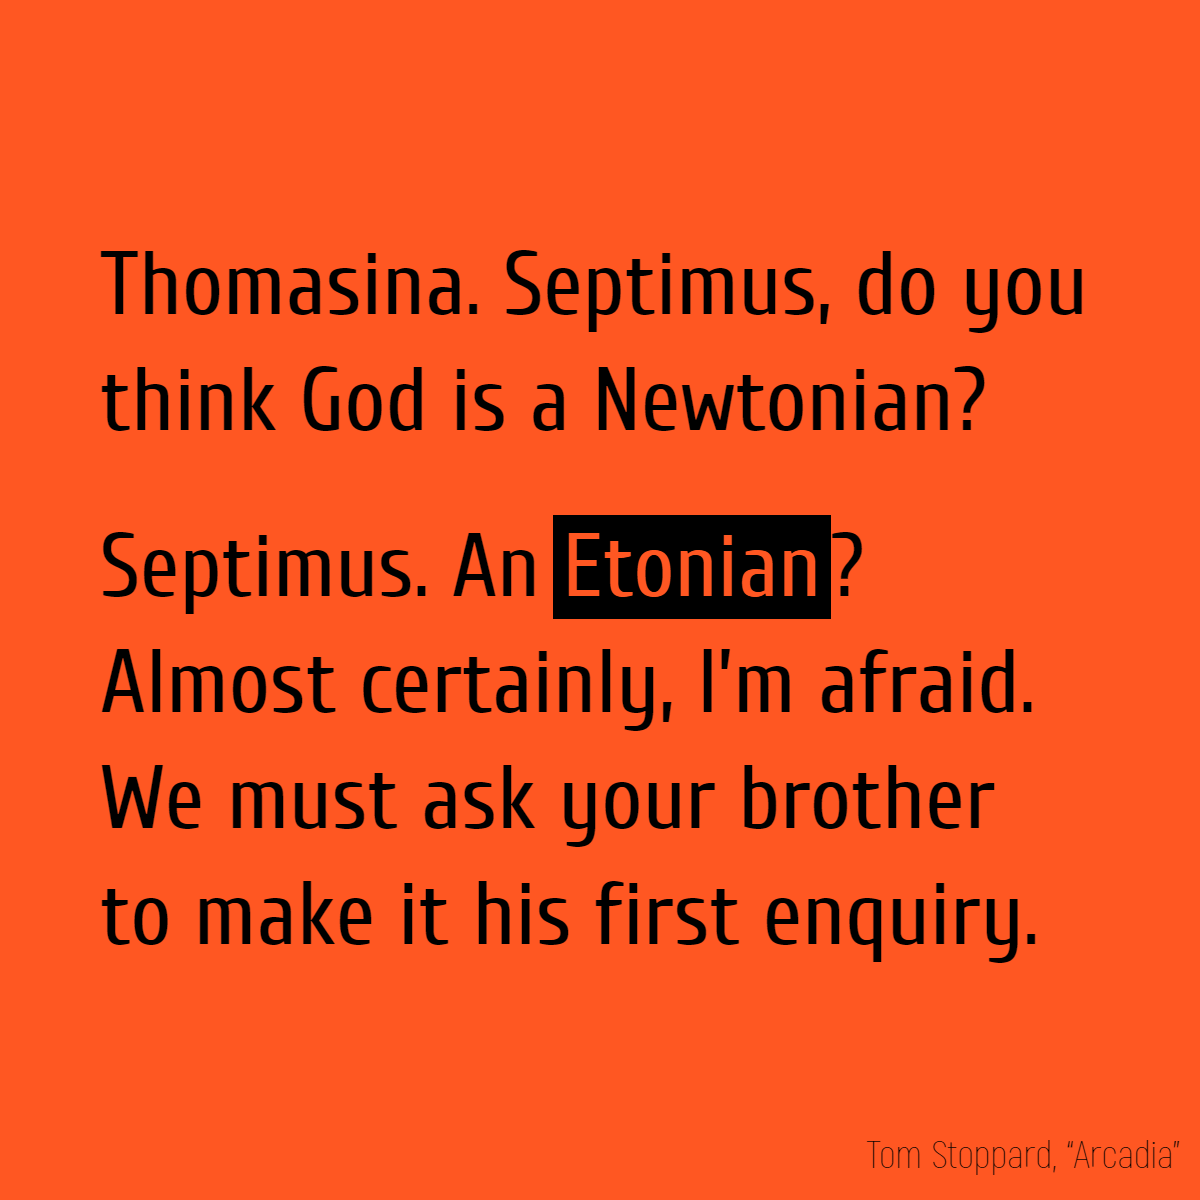 Thomasina. Septimus, do you think God is a Newtonian? Septimus. An **Etonian**? Almost certainly, I'm afraid. We must ask your brother to make it his first enquiry.